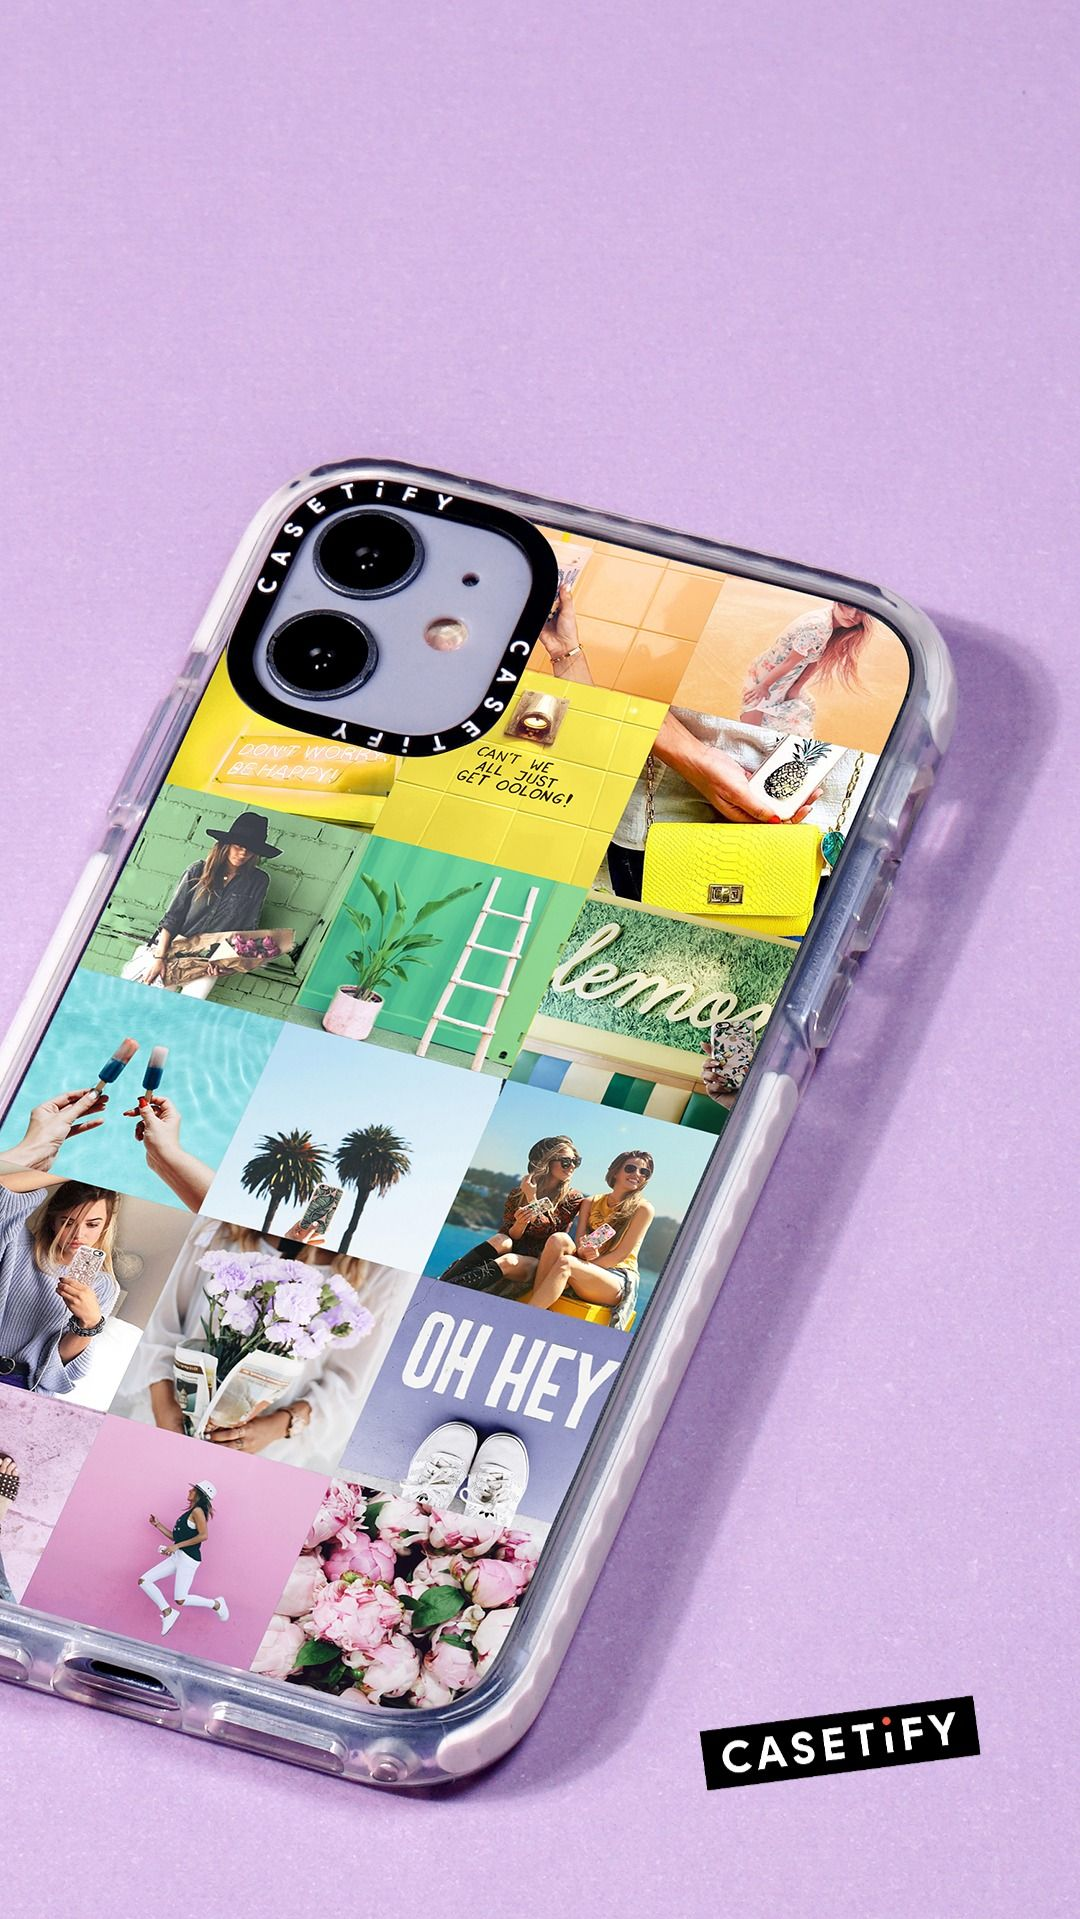 Diy Phone Case Using Photos Diy Phone Case Cute Phone Cases Make A Phone Case